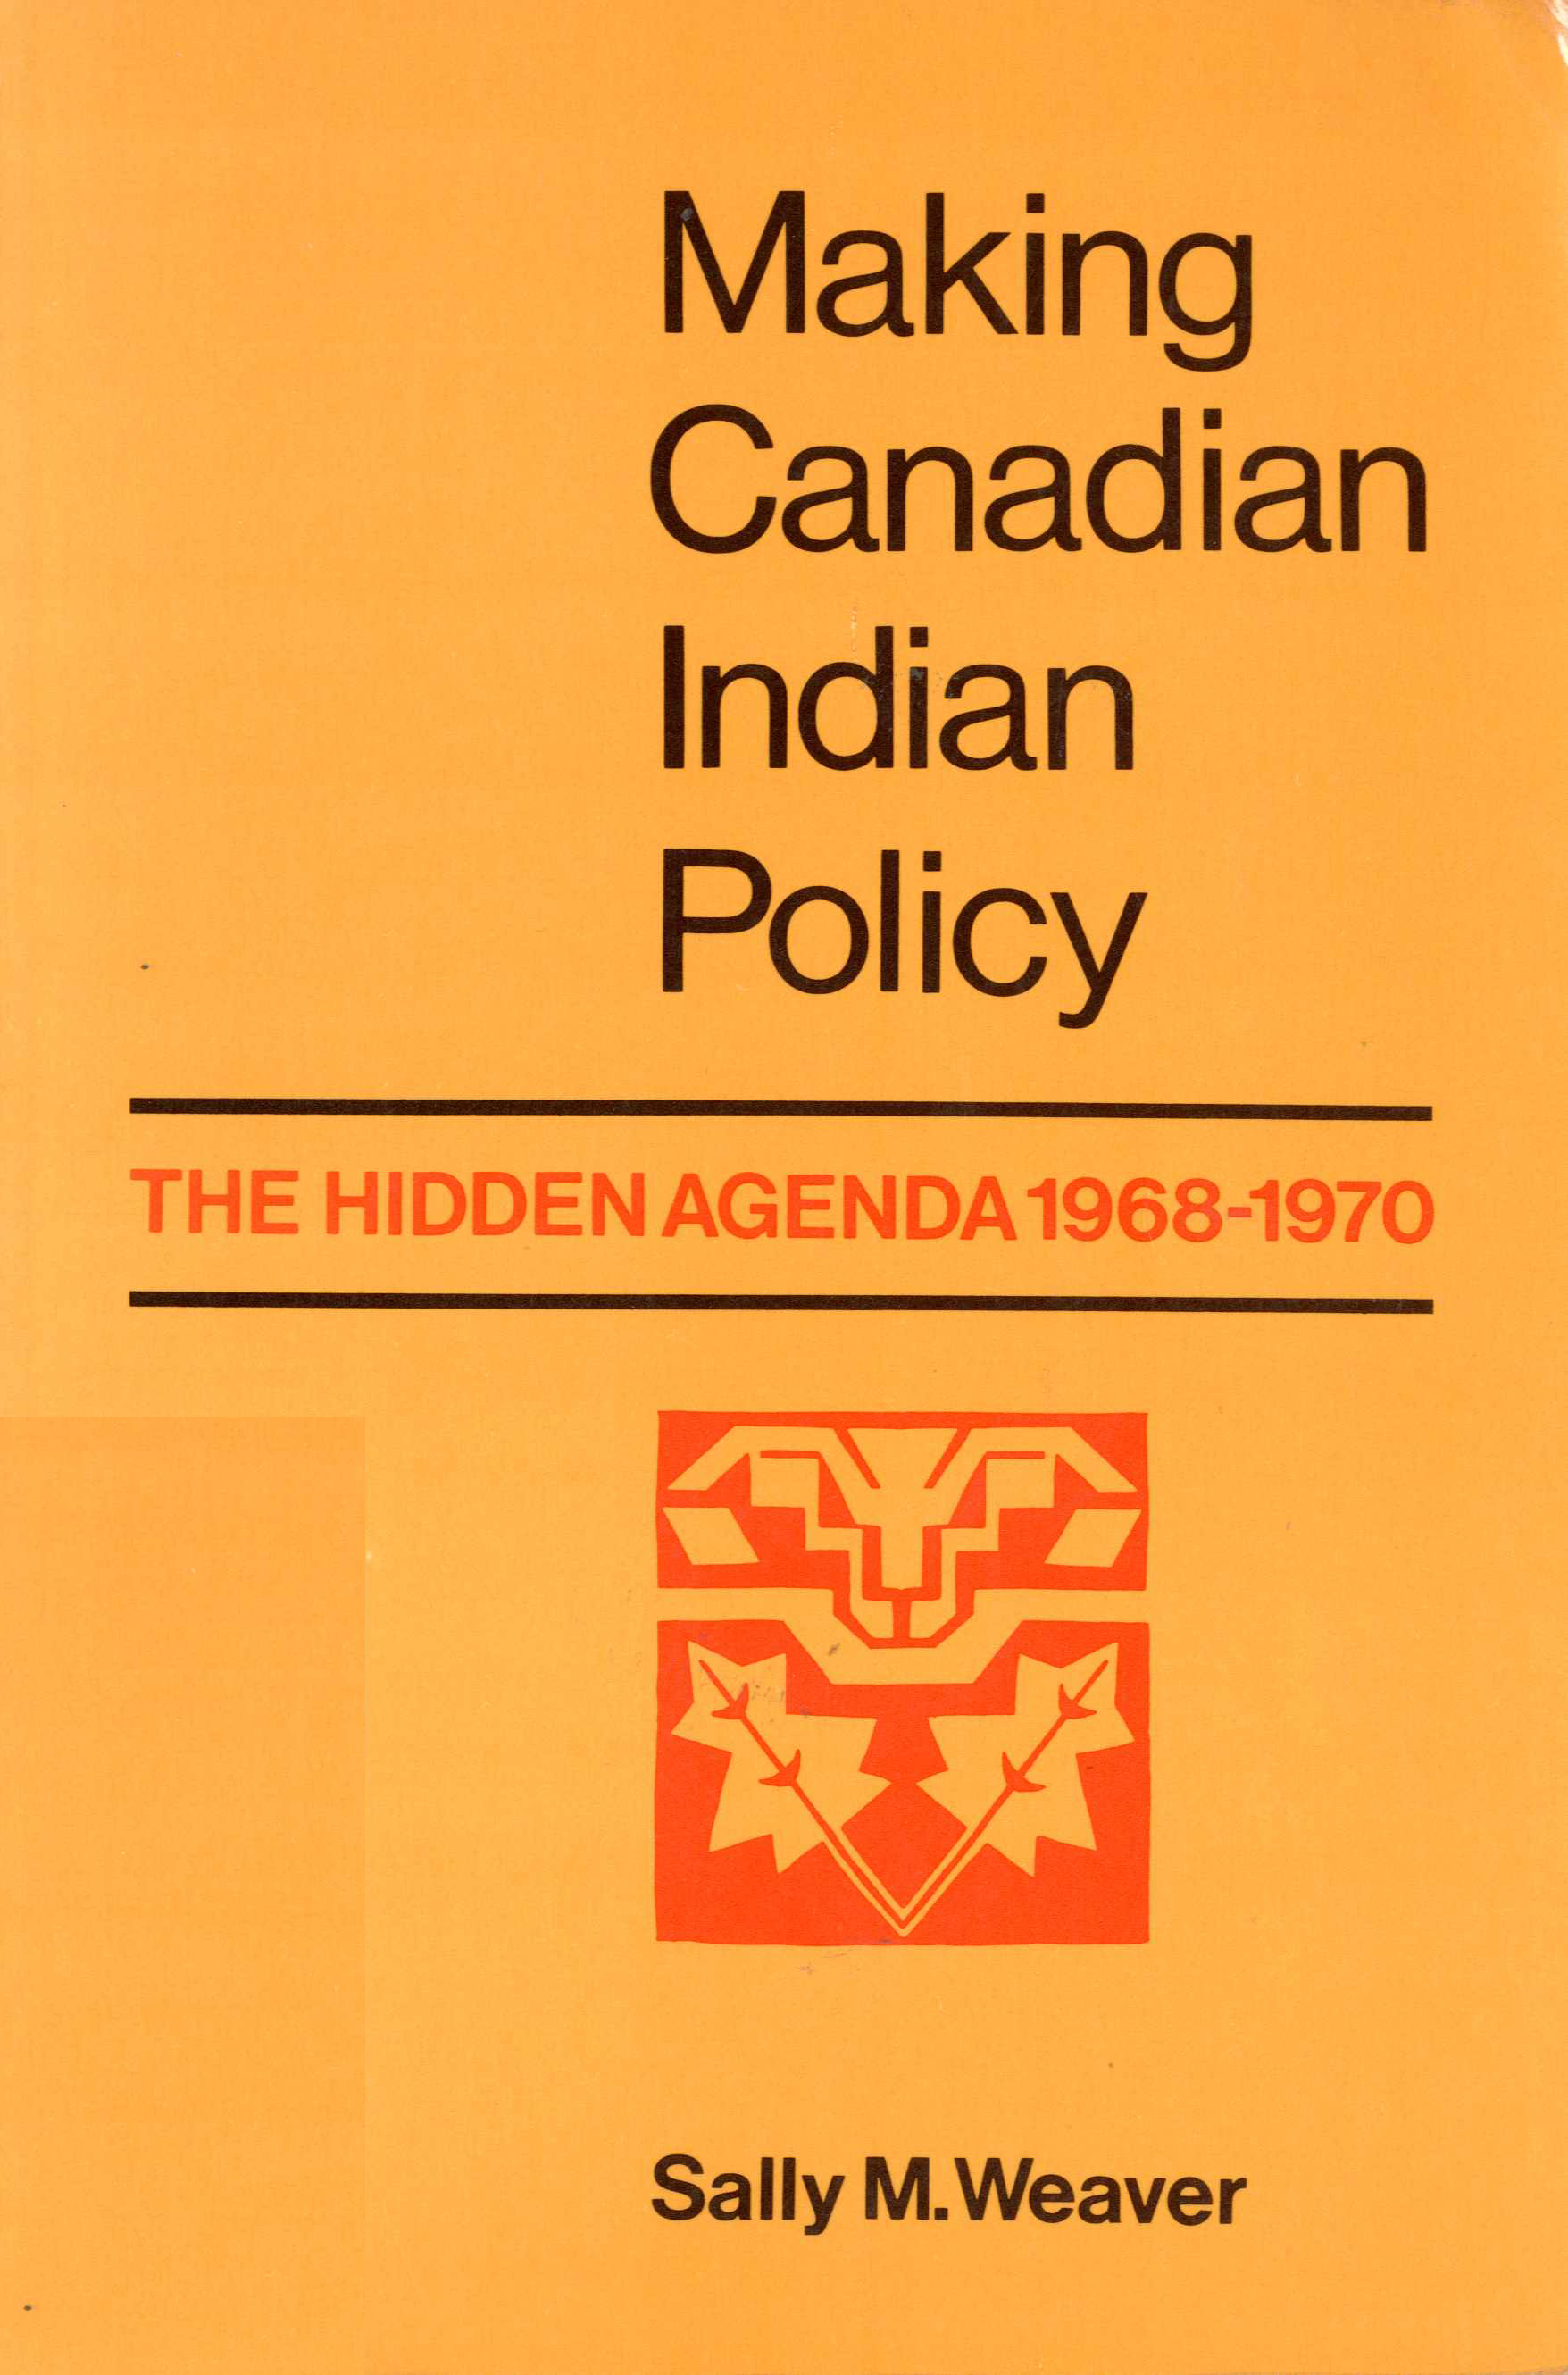 Making Canadian Indian Policy: The Hidden Agenda 1968-1970 Image